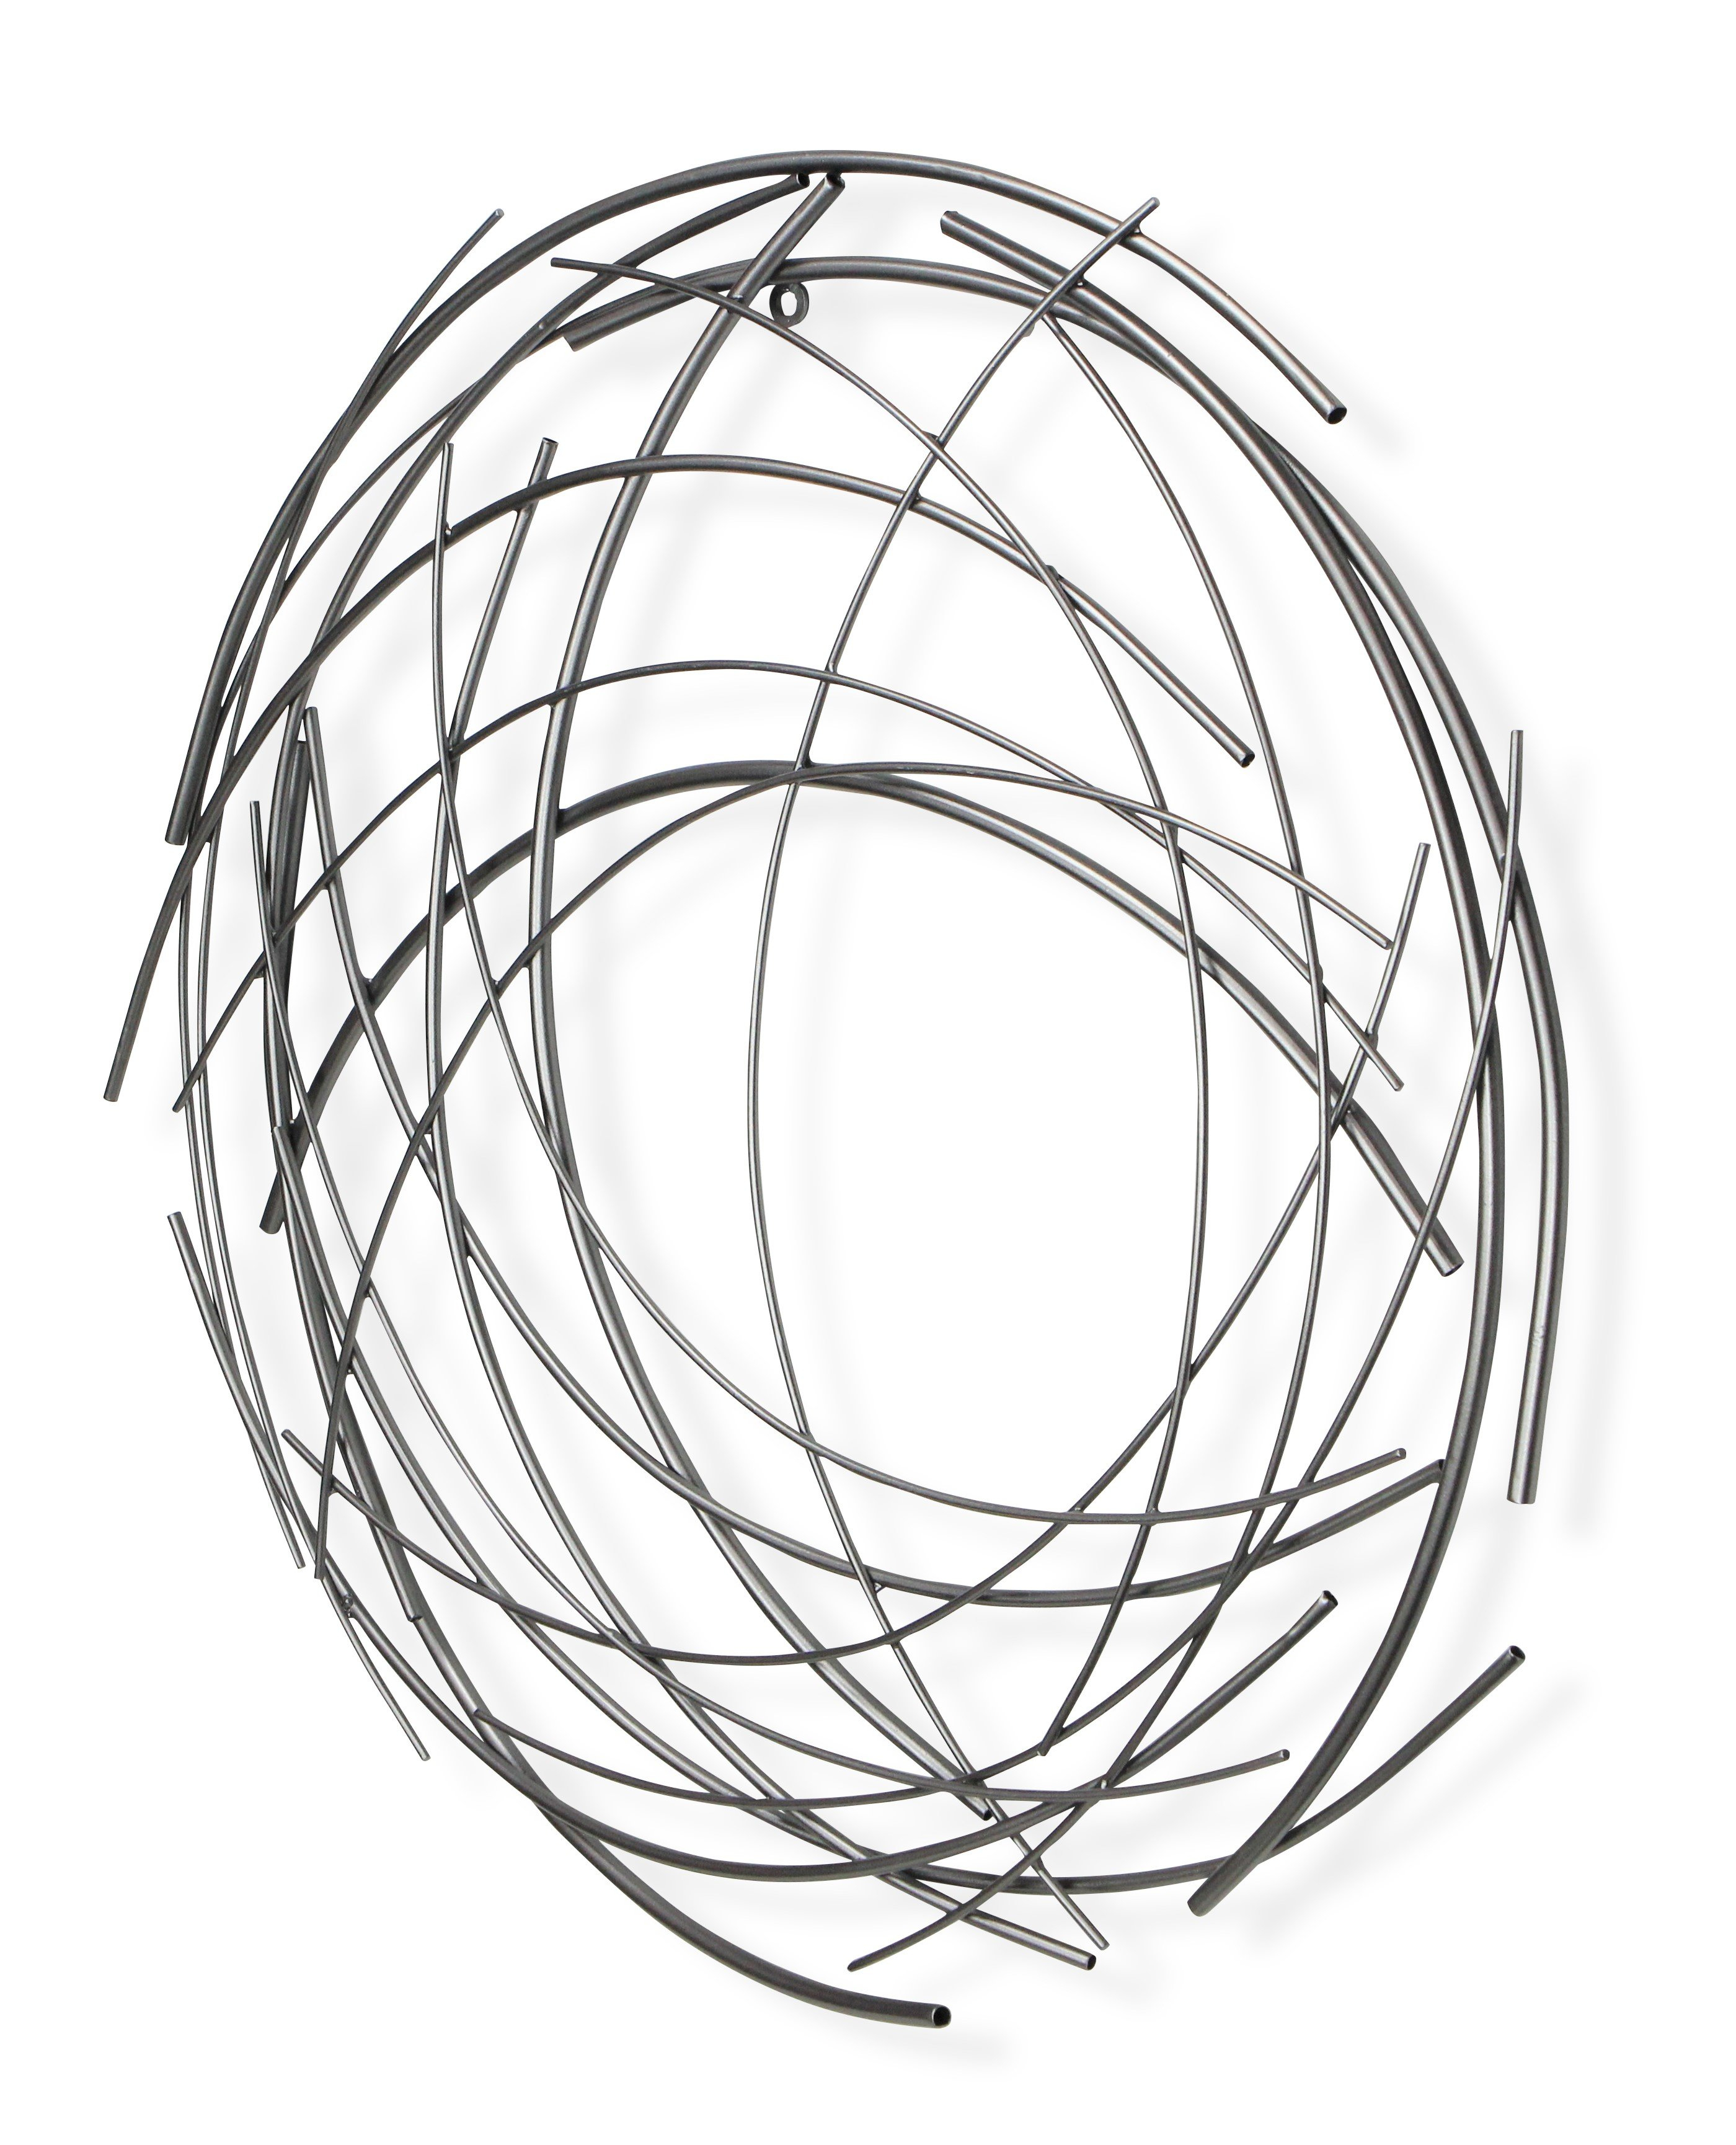 Contemporary Abstract Round Wall Décor Intended For Contemporary Abstract Round Wall Decor (View 5 of 30)